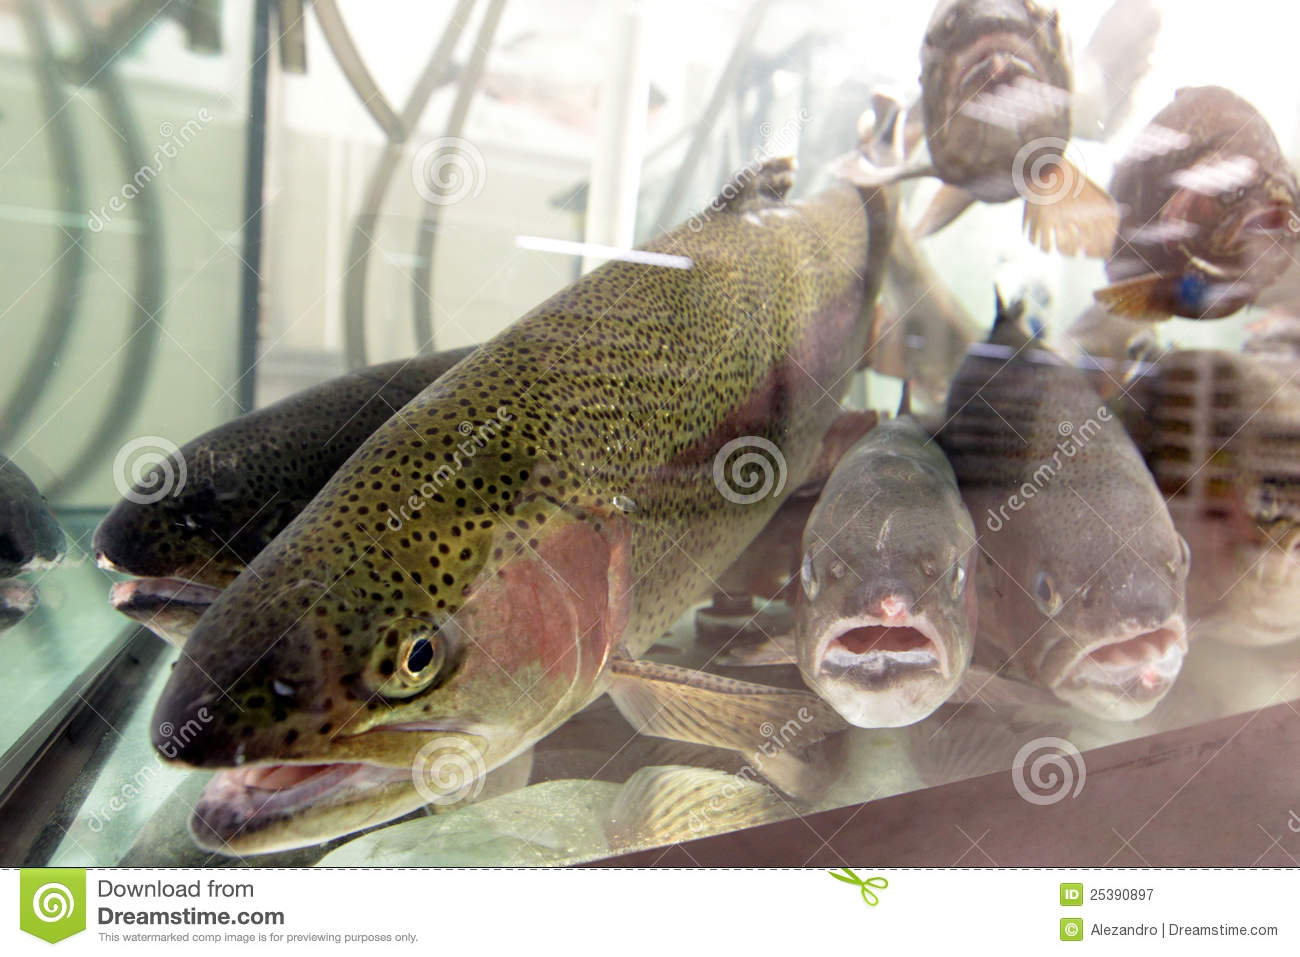 Live aquarium trout fish for sale royalty free stock for Fish for sale online